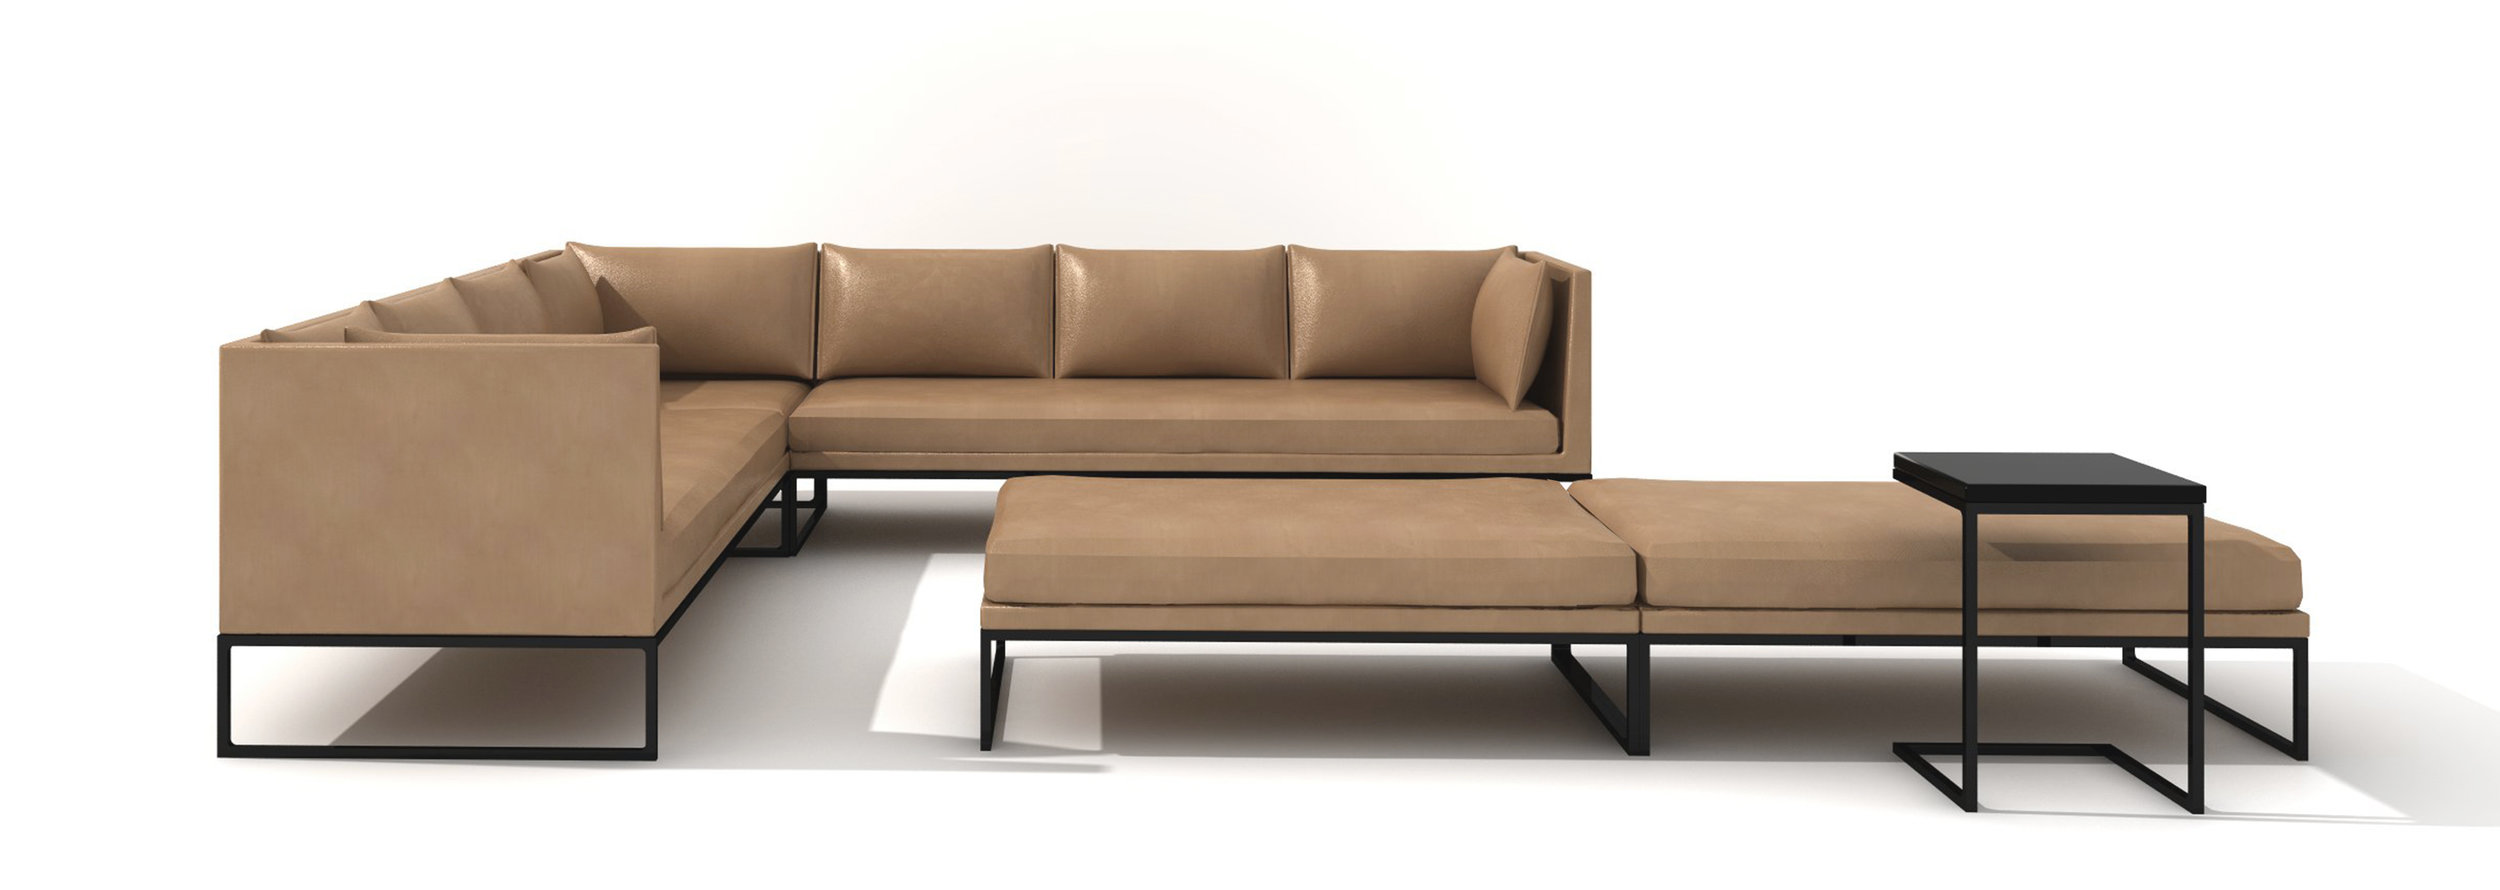 CALM_LEATHER_SECTIONAL.jpg